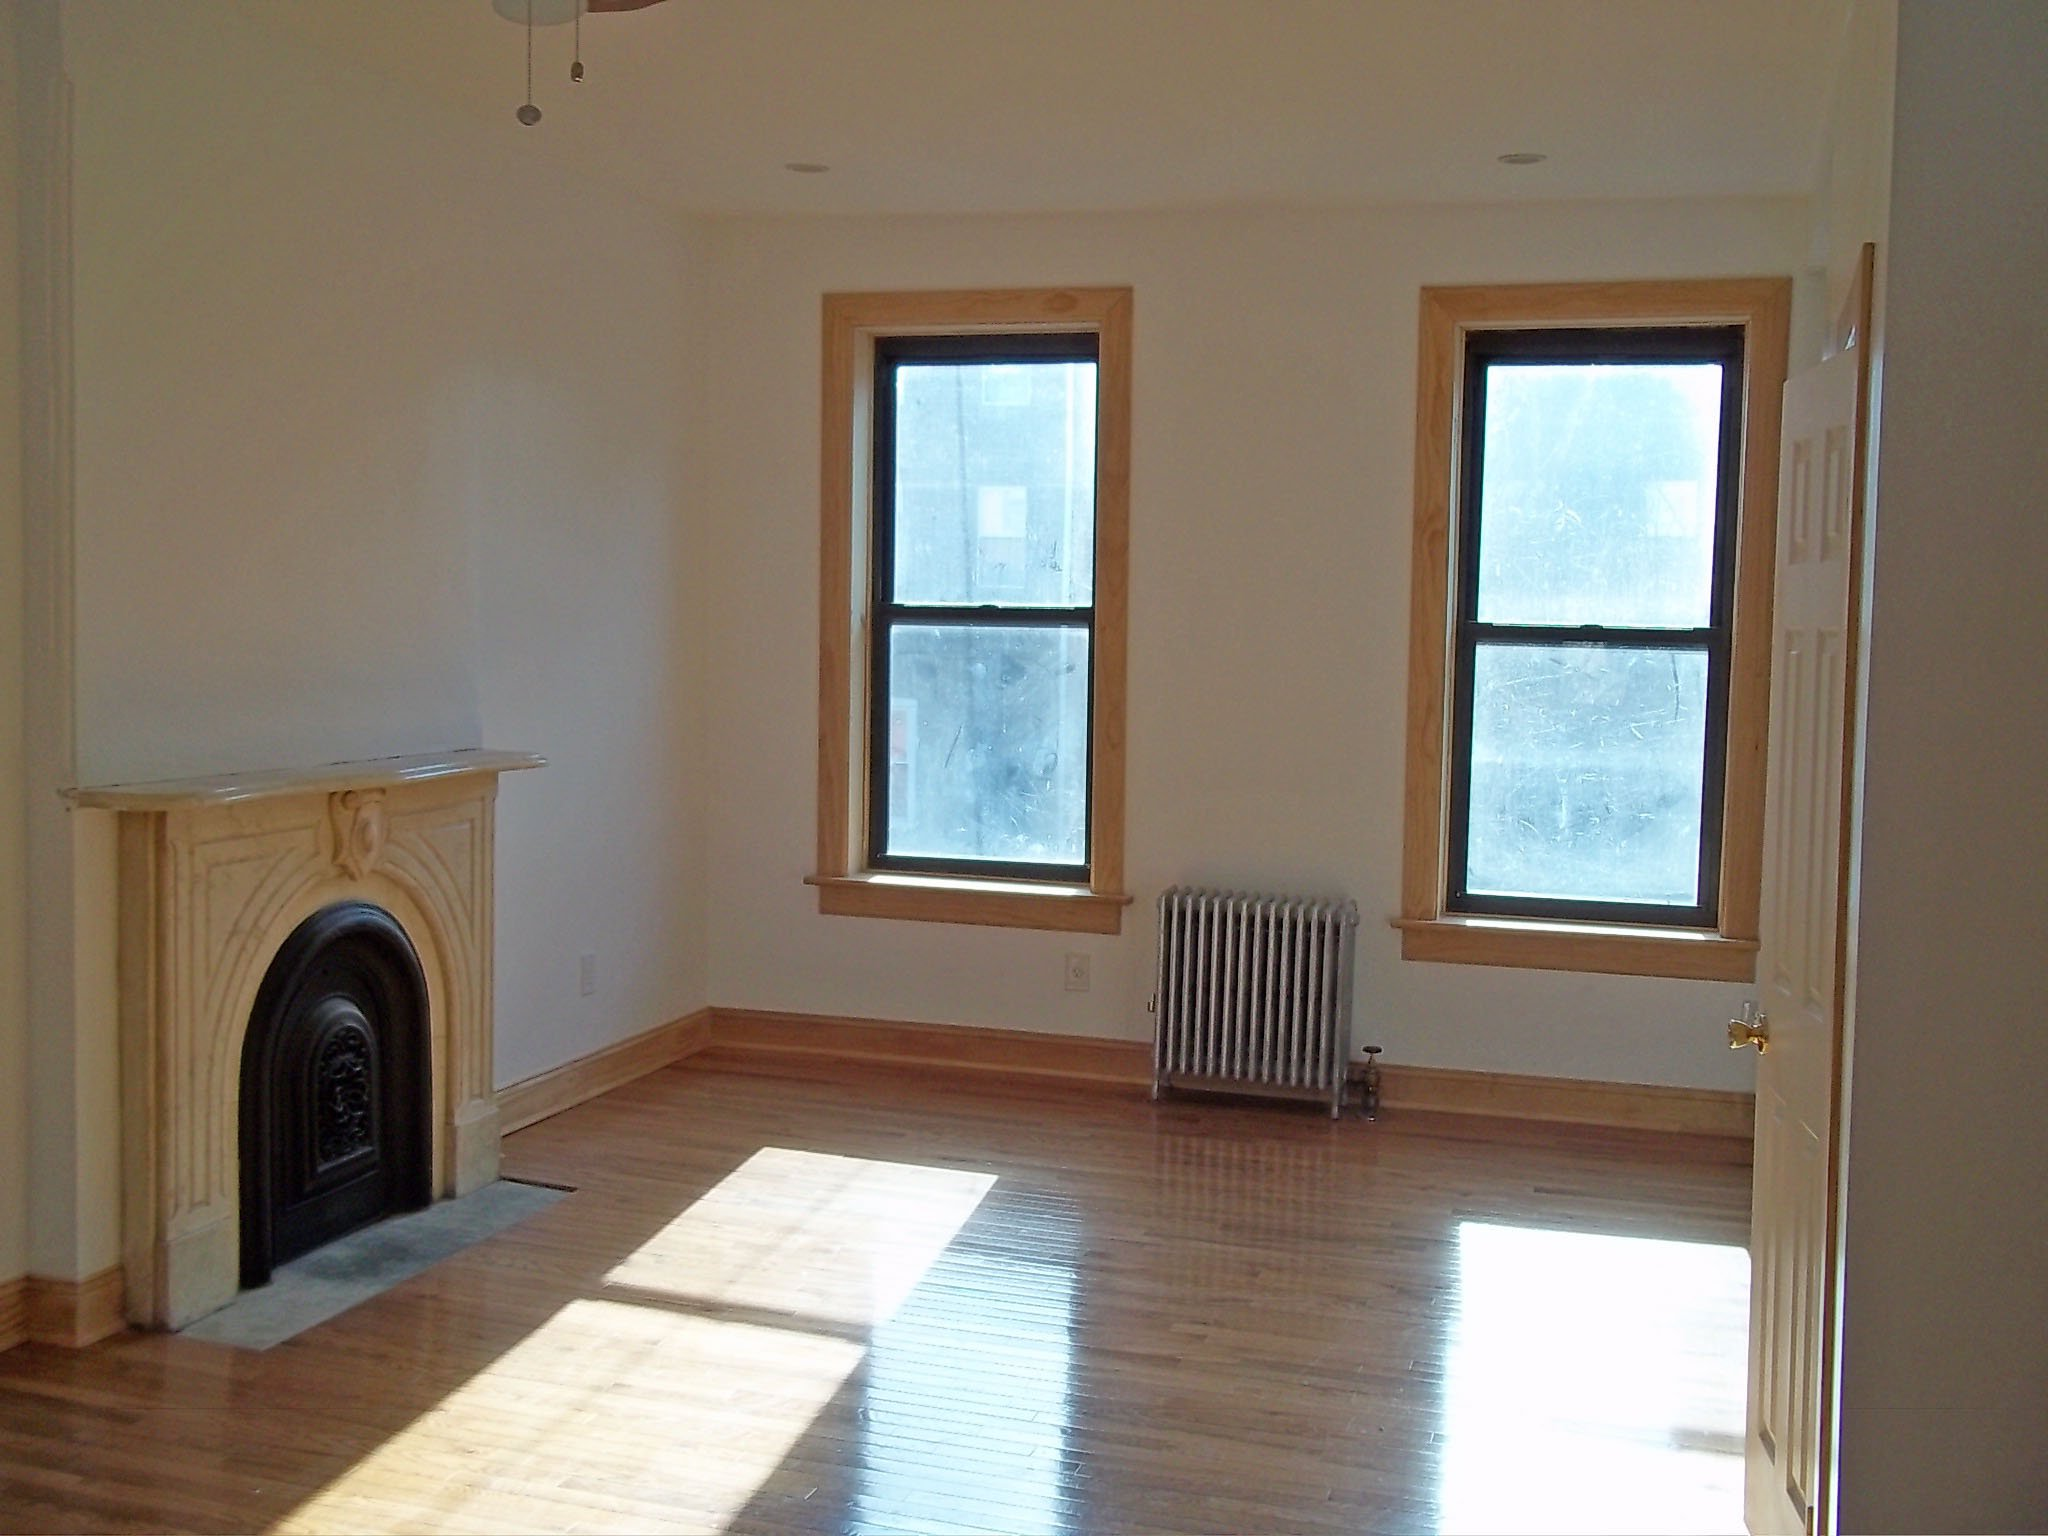 Apartments For Rent In Bedford Stuyvesant Brooklyn Ny